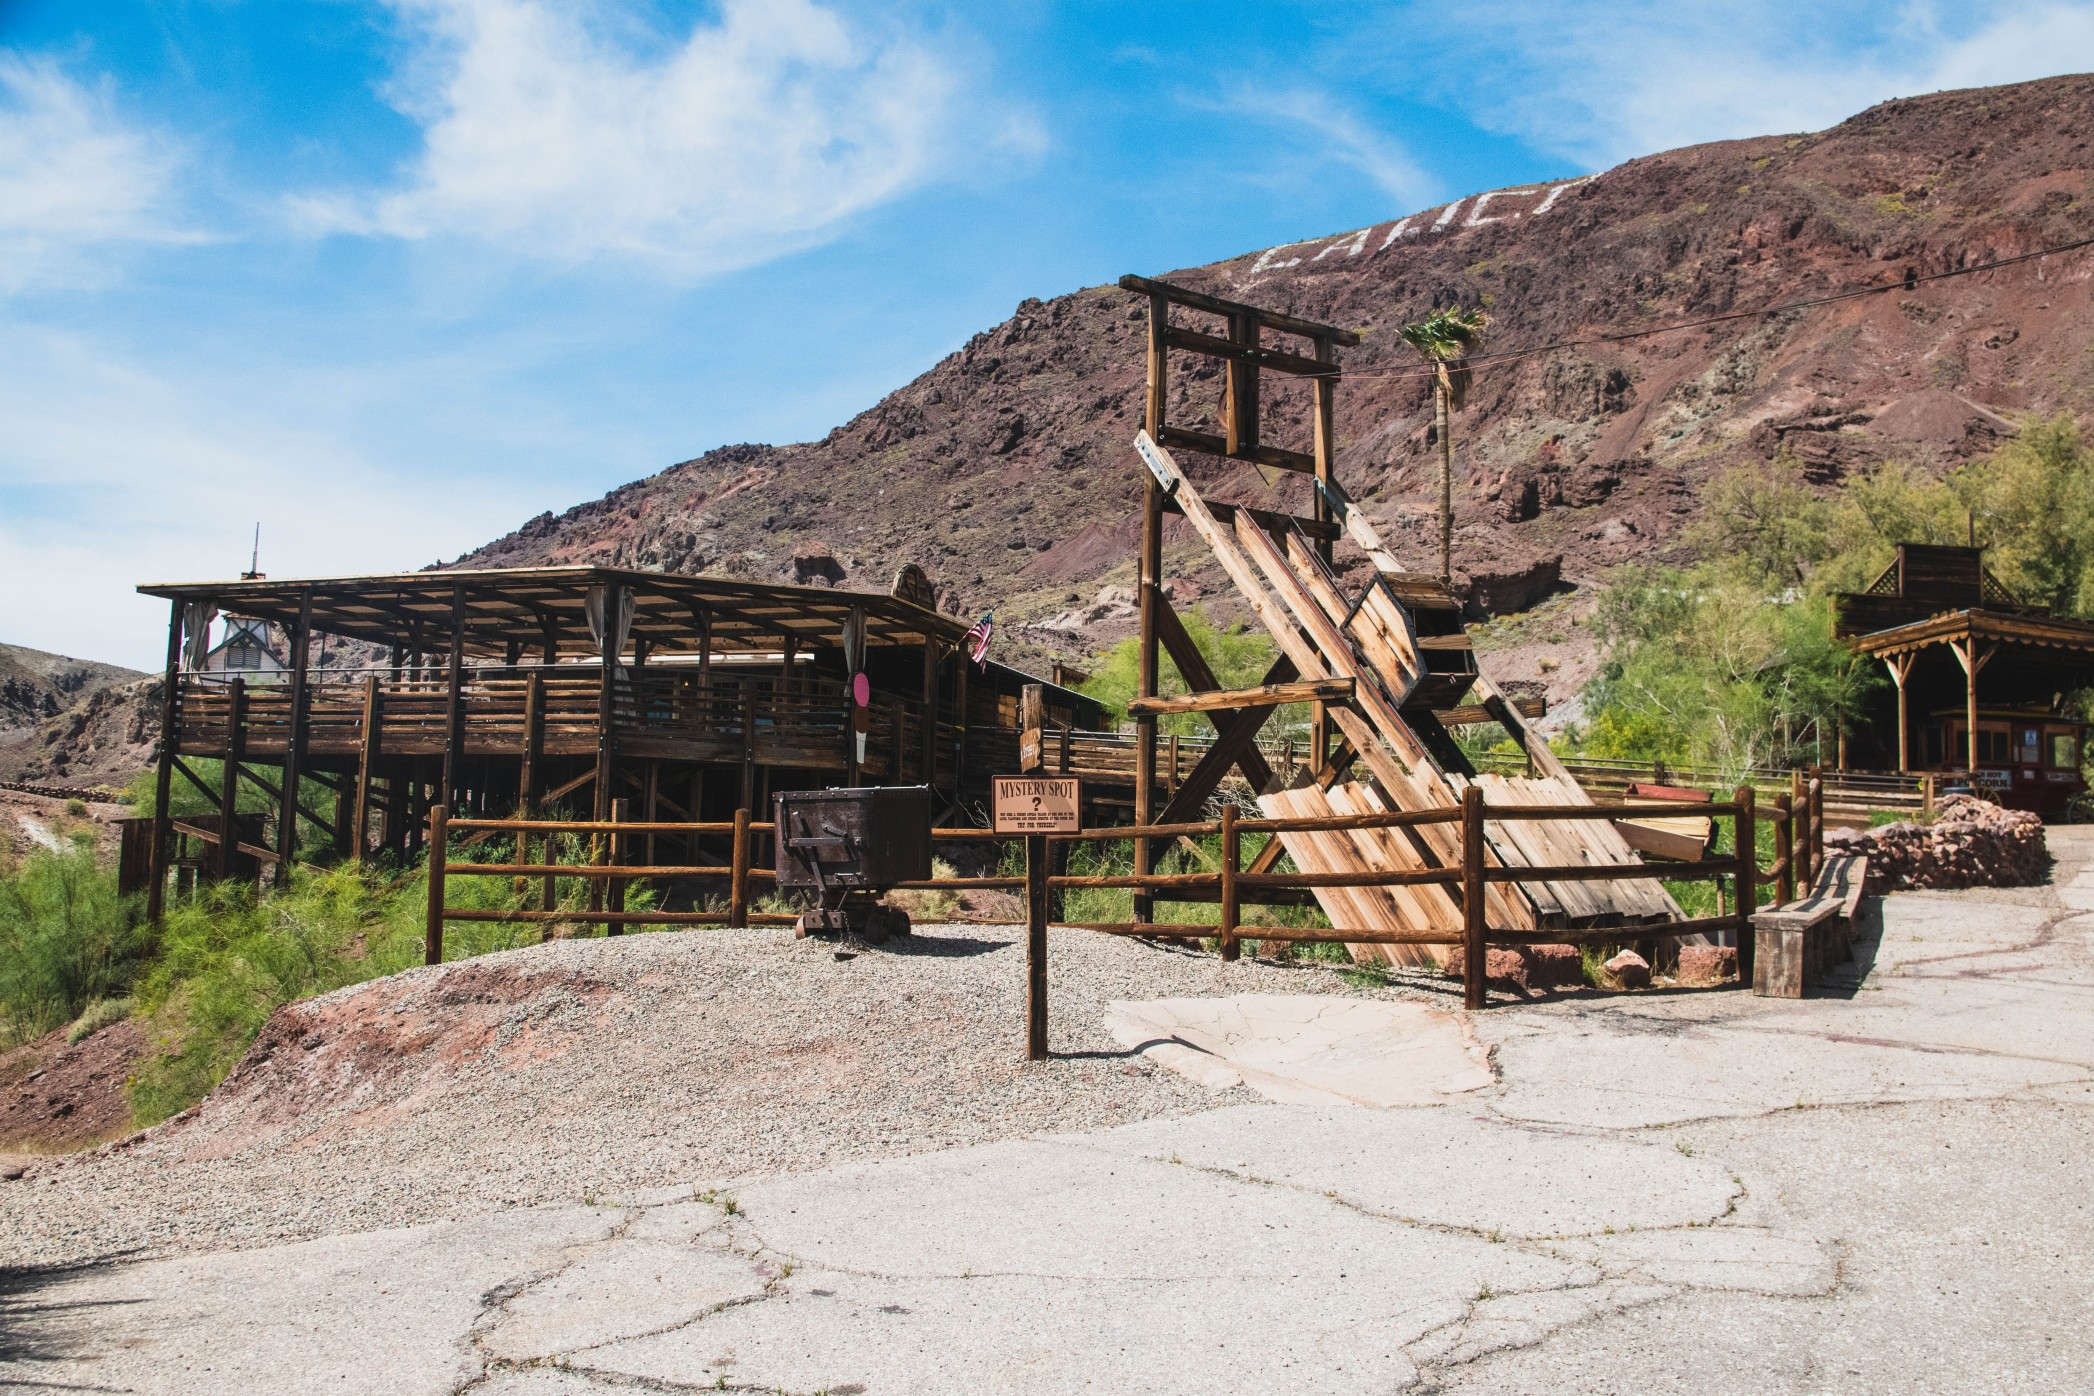 The Calico Ghost Town Road Trip Guide